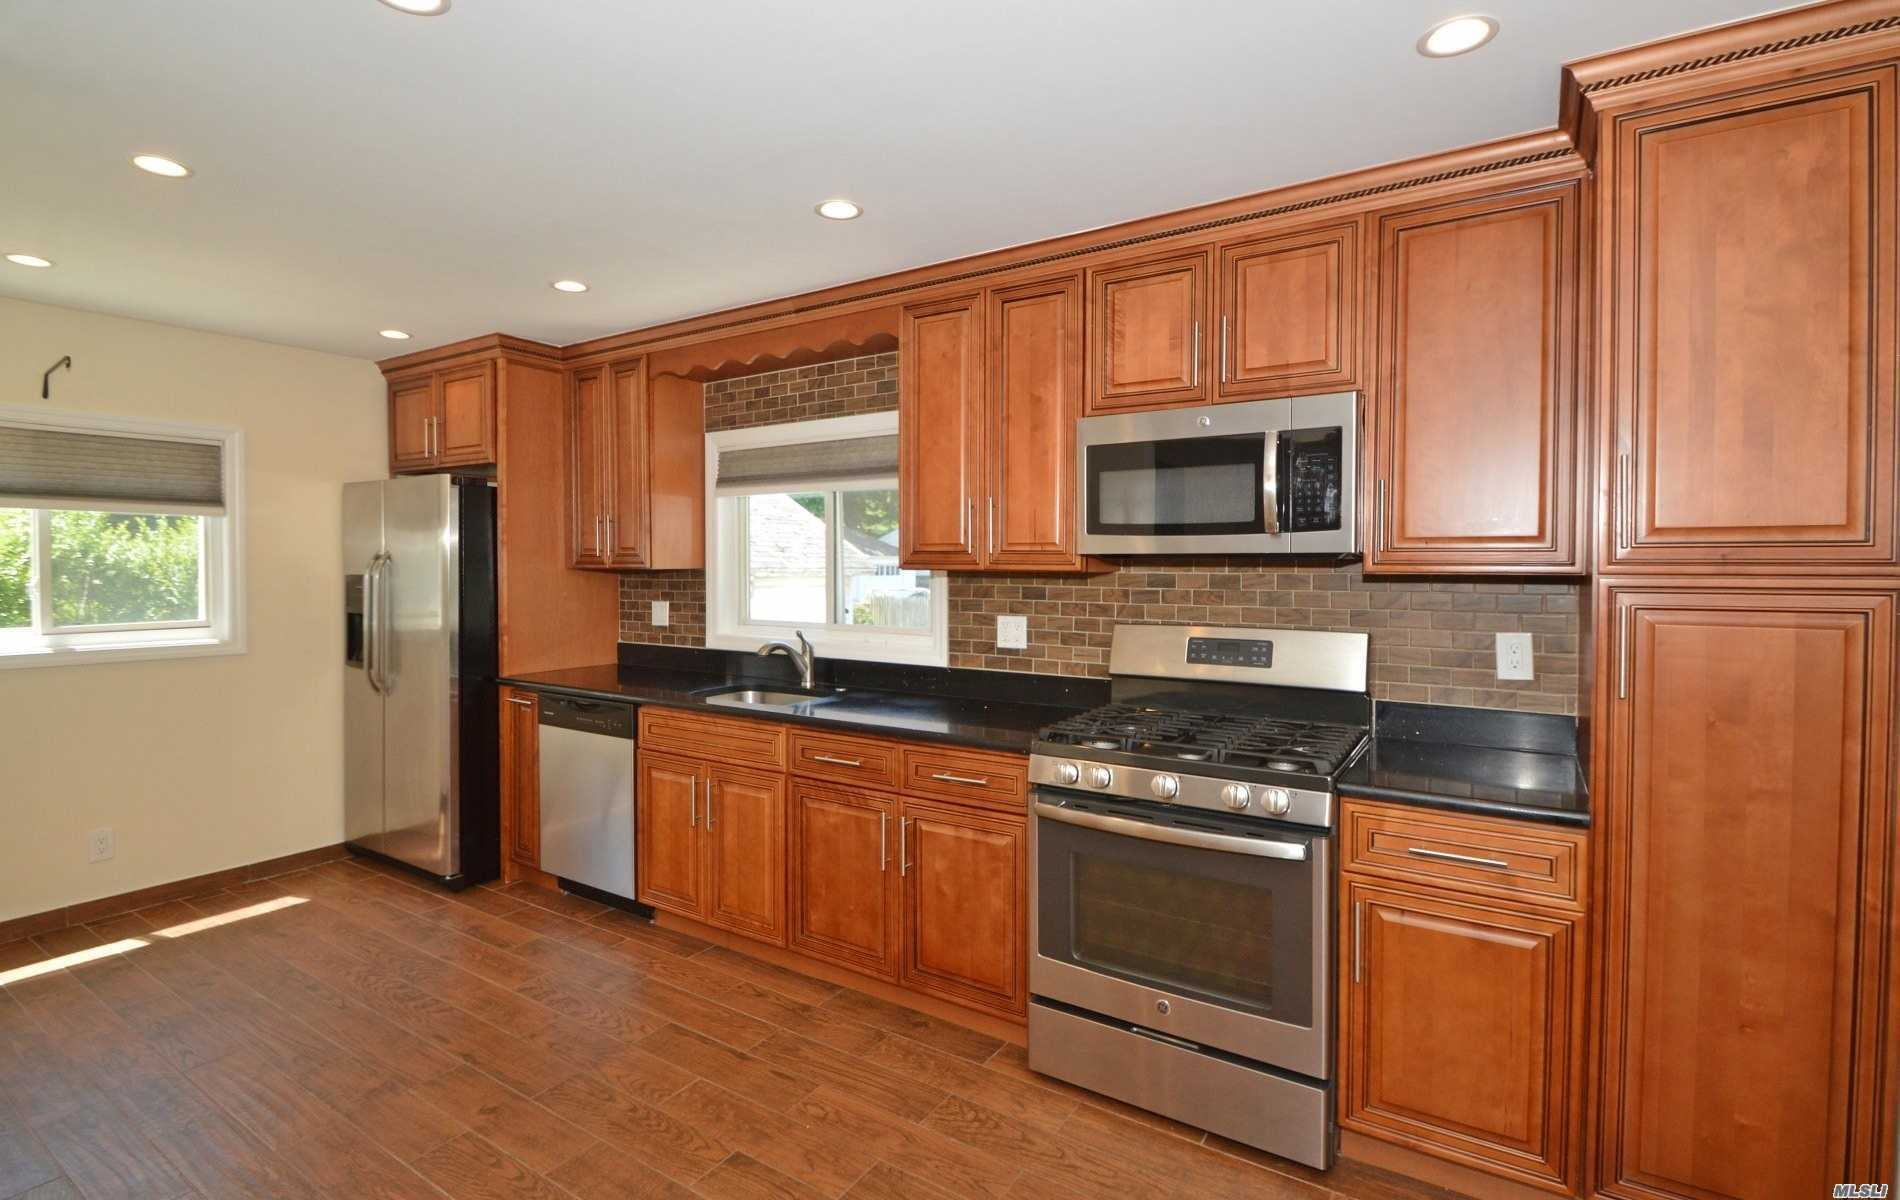 Lynbrook Updated 2 Bedroom Apartment , 1.5 Baths, Features Large Eik, Living Room, Hardwood Floors Thru Out, Parking Allowed In Driveway, Use Of Back Yard, Includes Washer And Dryer, Addl Storage In The Basement... Includes Flat Screen Tv